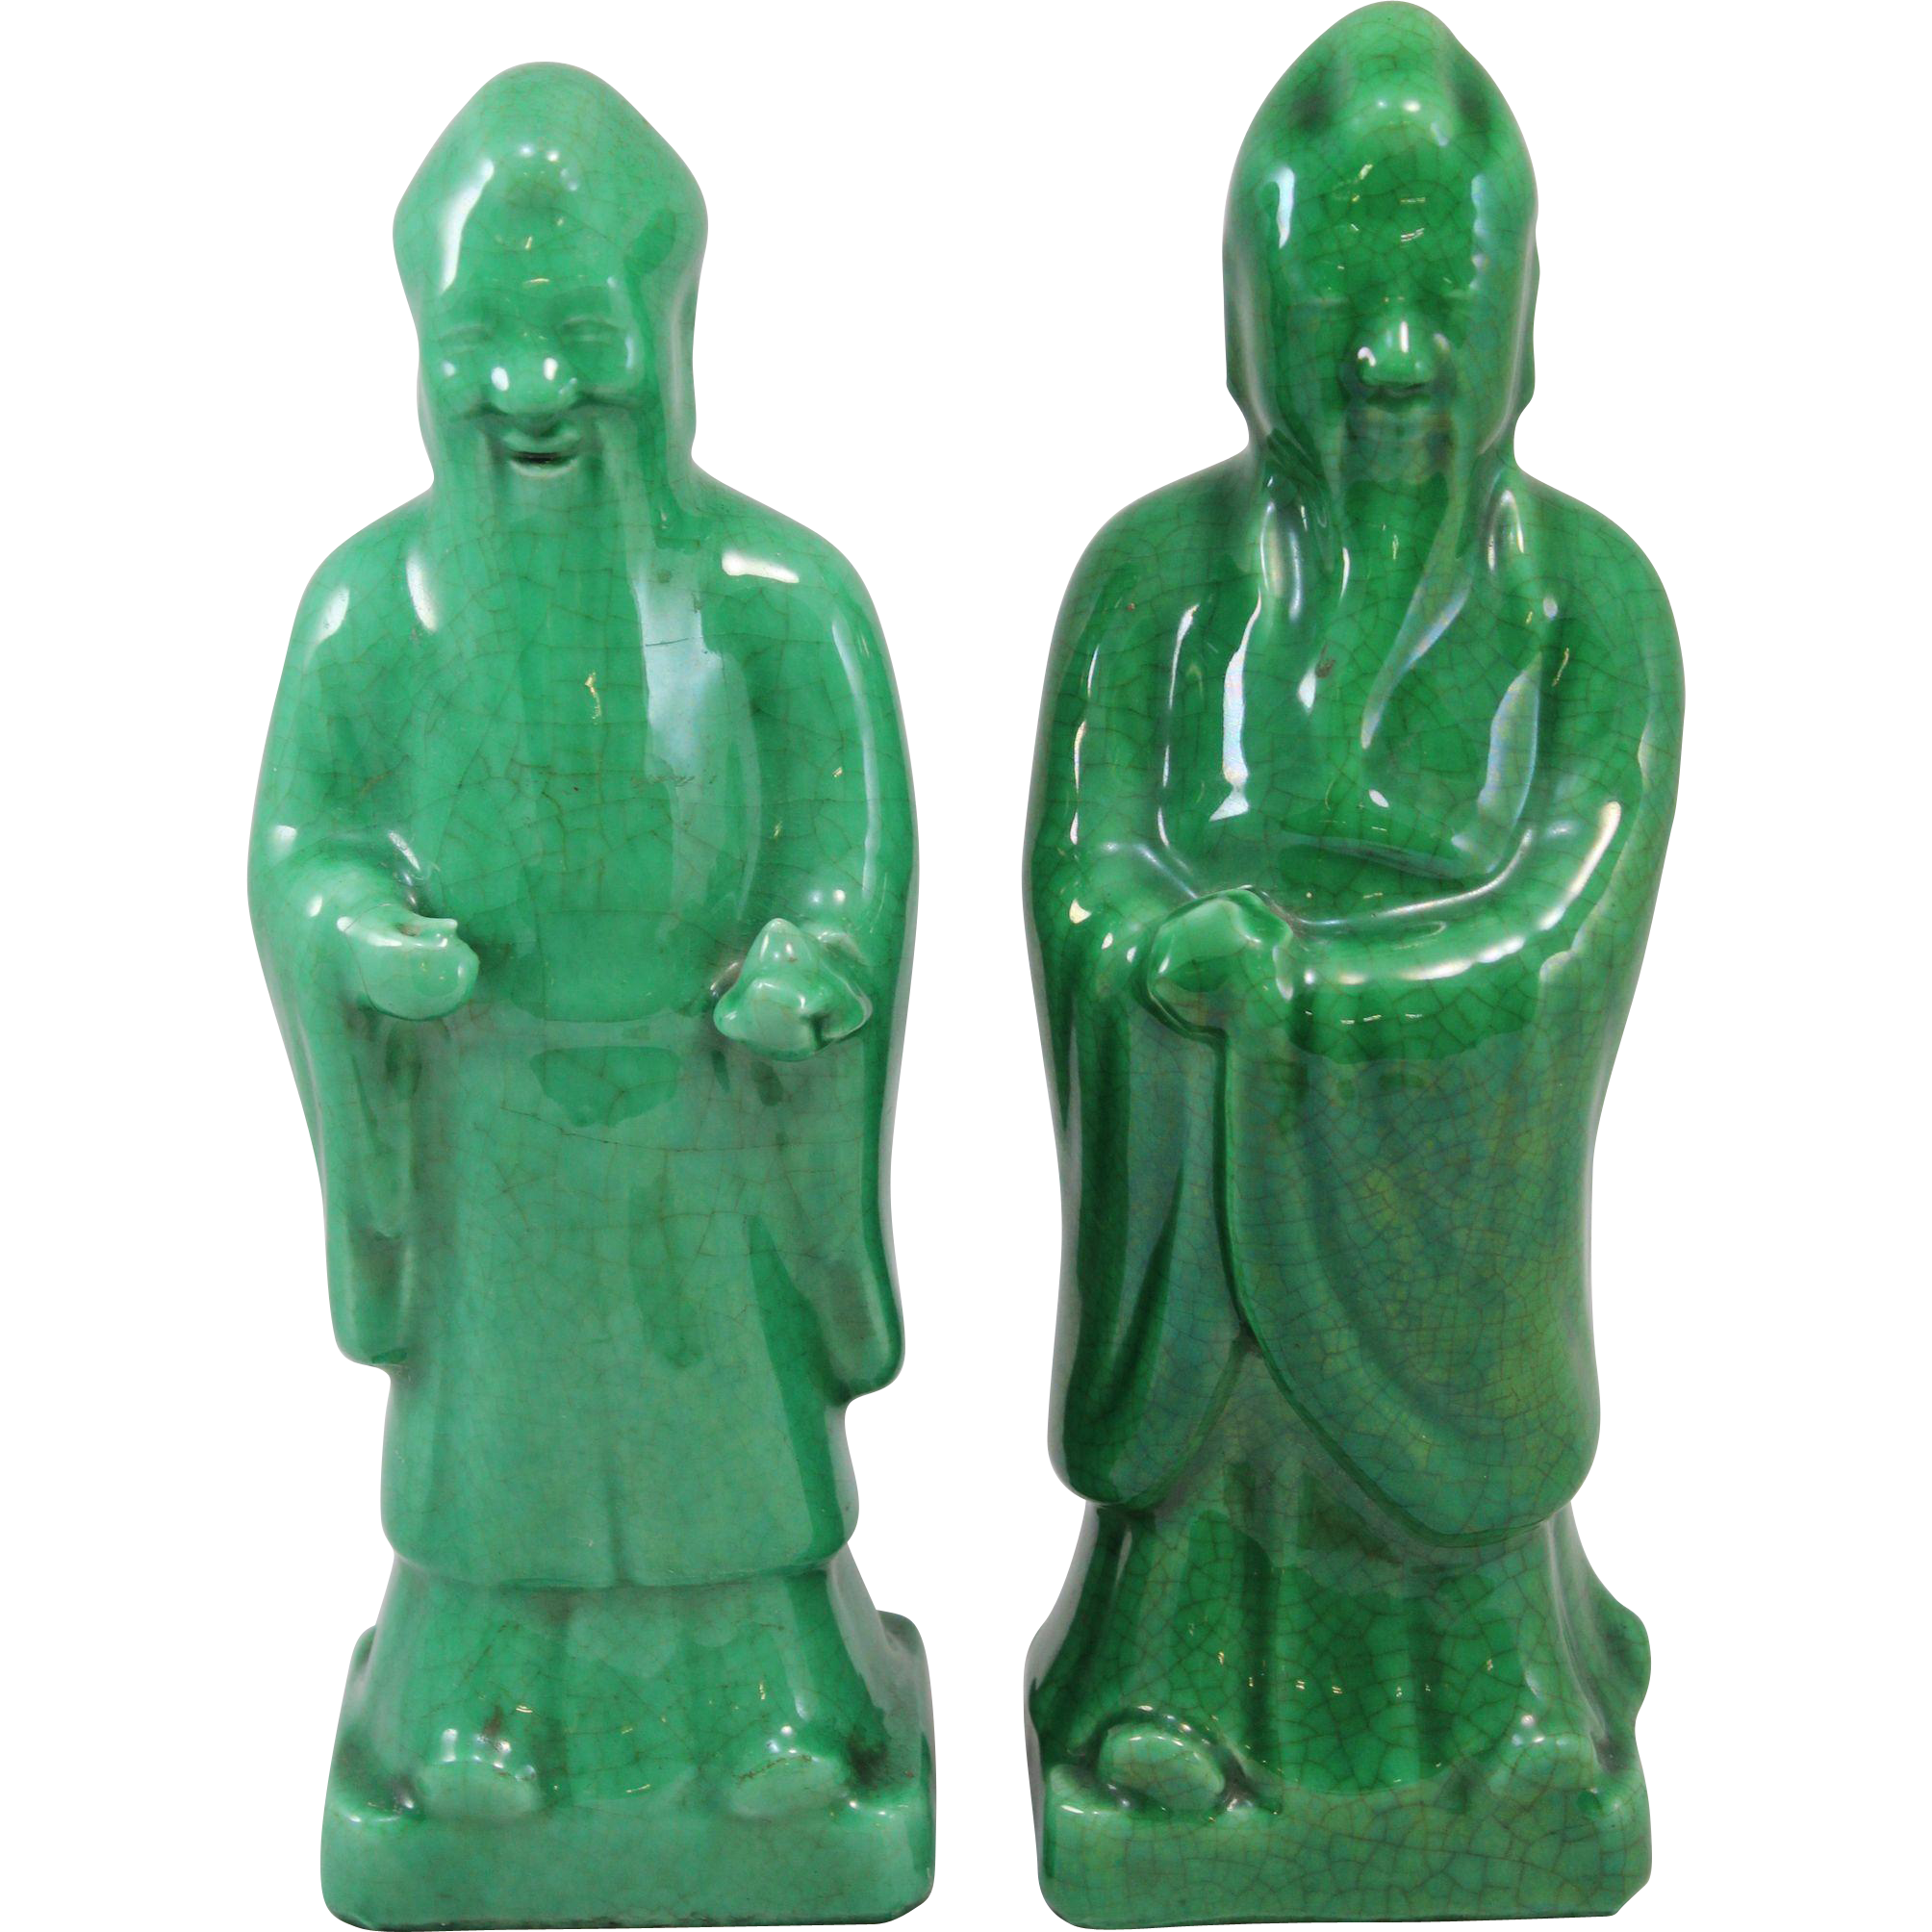 Two 19th c Ceramic Green Glazed Chinese Figures with Crackled Finish